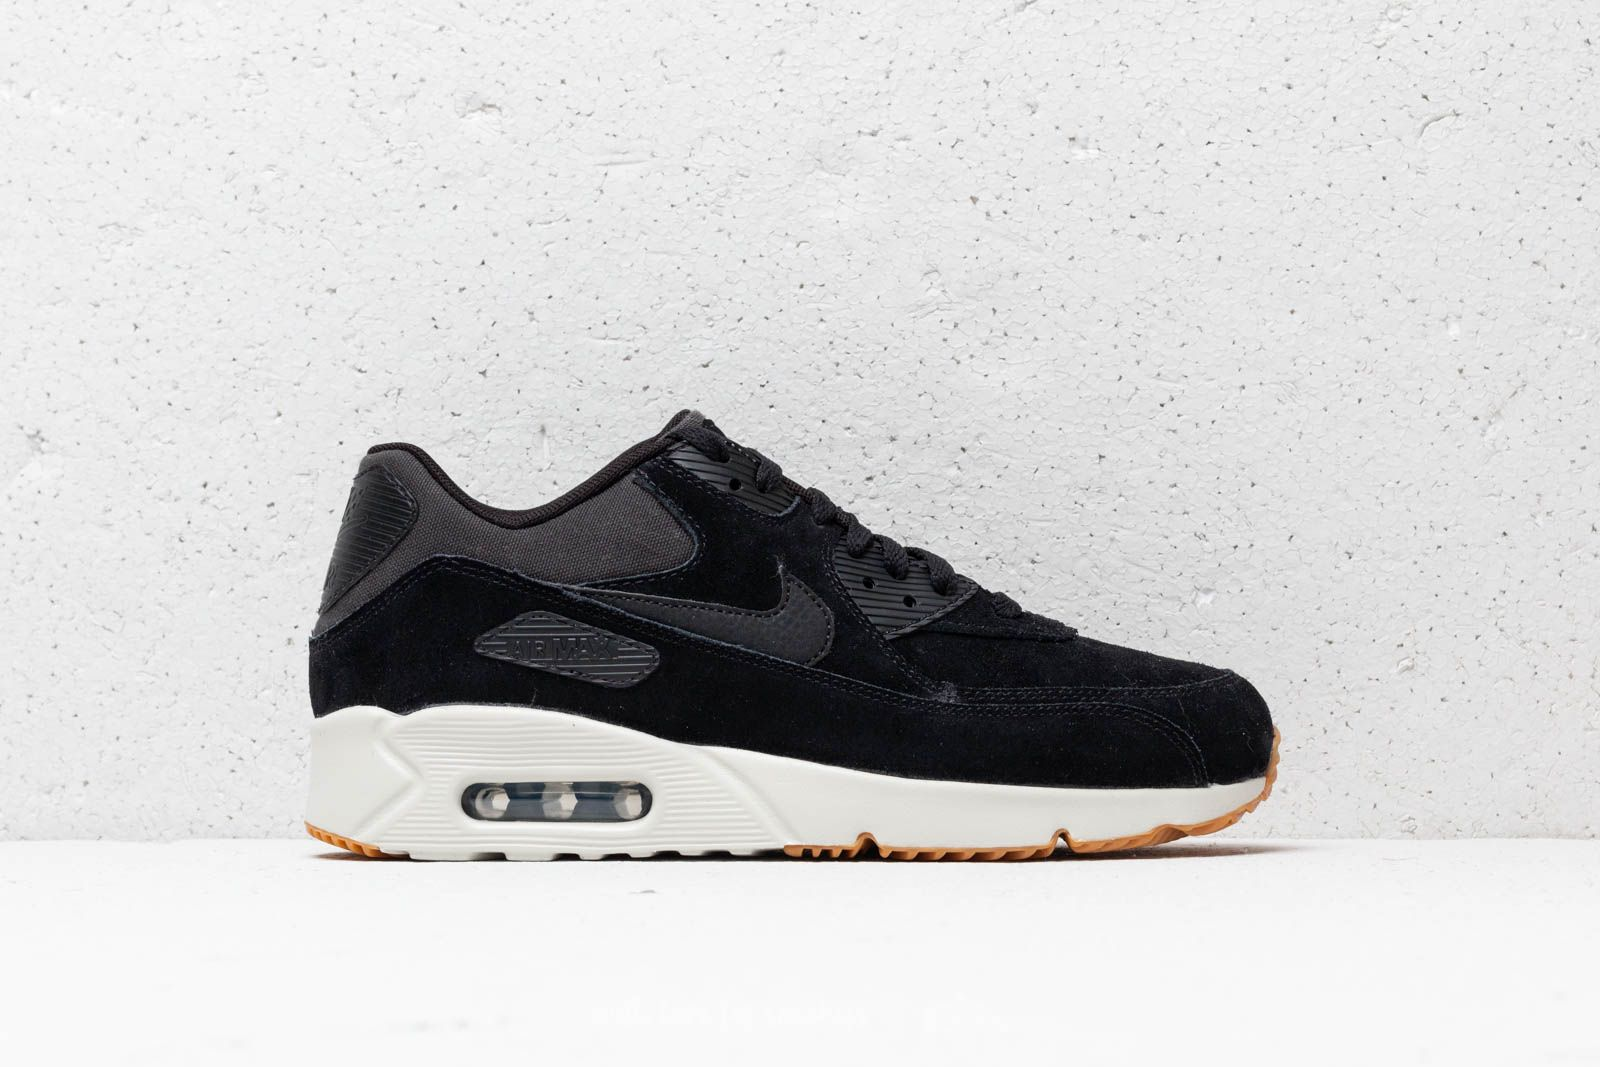 innovative design 67365 e89c2 Nike Air Max 90 Ultra 2.0 Leather Black  Black-Light Bone at a great